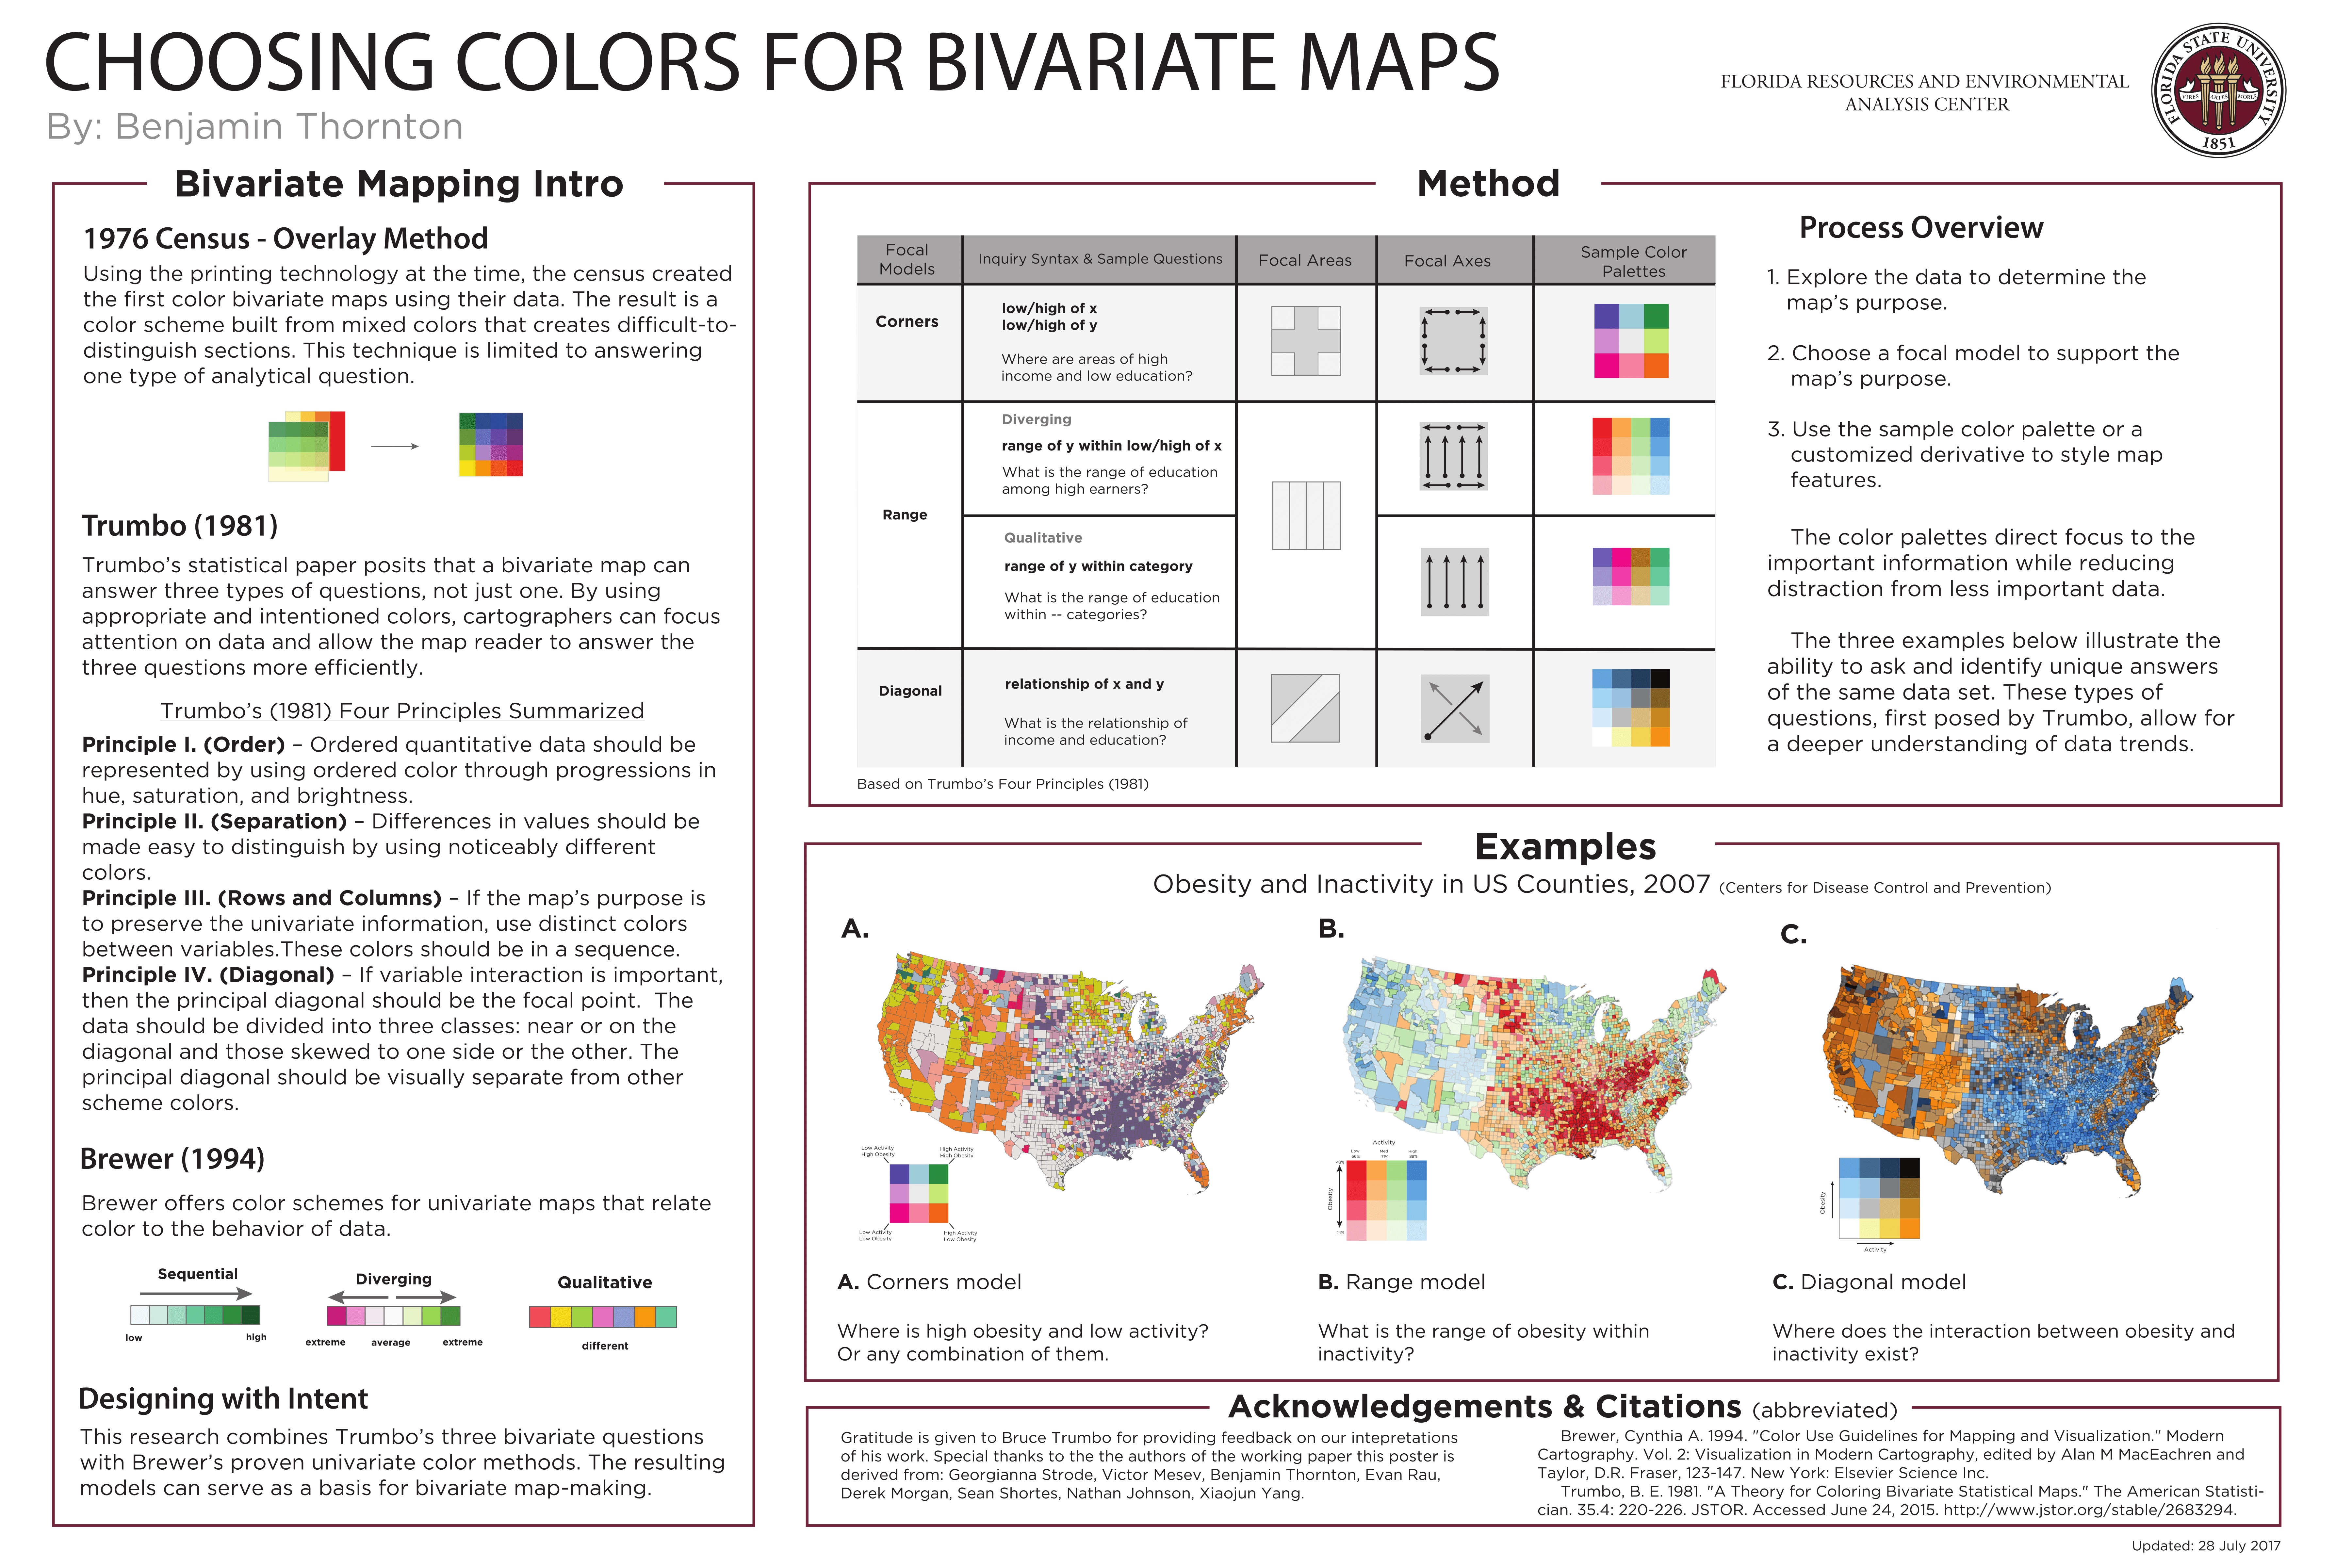 Choosing Colors for Bivariate Maps. Bivariate maps show 2 phenomena simultaneously. Color choices can direct the reader's focus to the important information while reducing distraction from less important data.  This research serves as a basis for bivariate map-making with color.